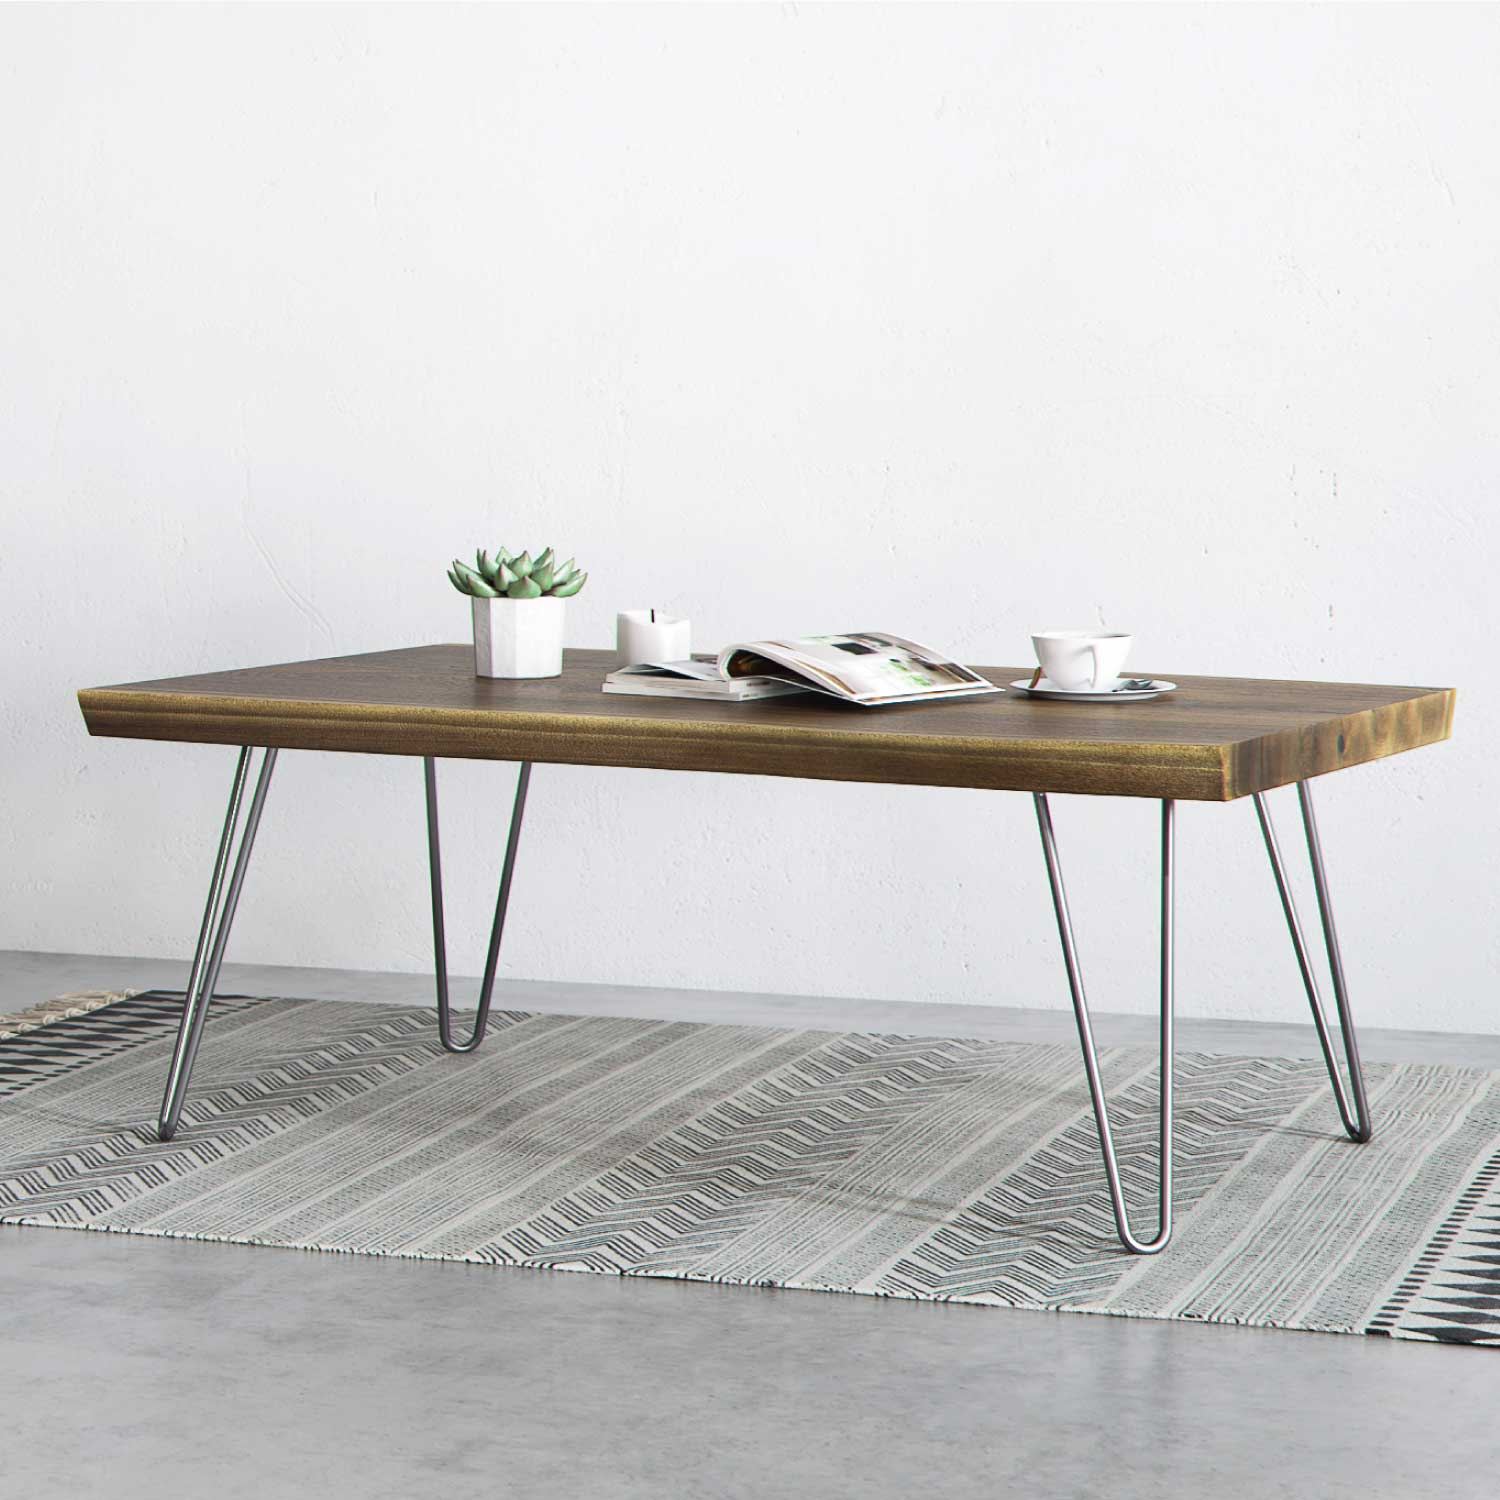 Hairpin Legs Couchtisch 14inch / 35cm - Coffee Table